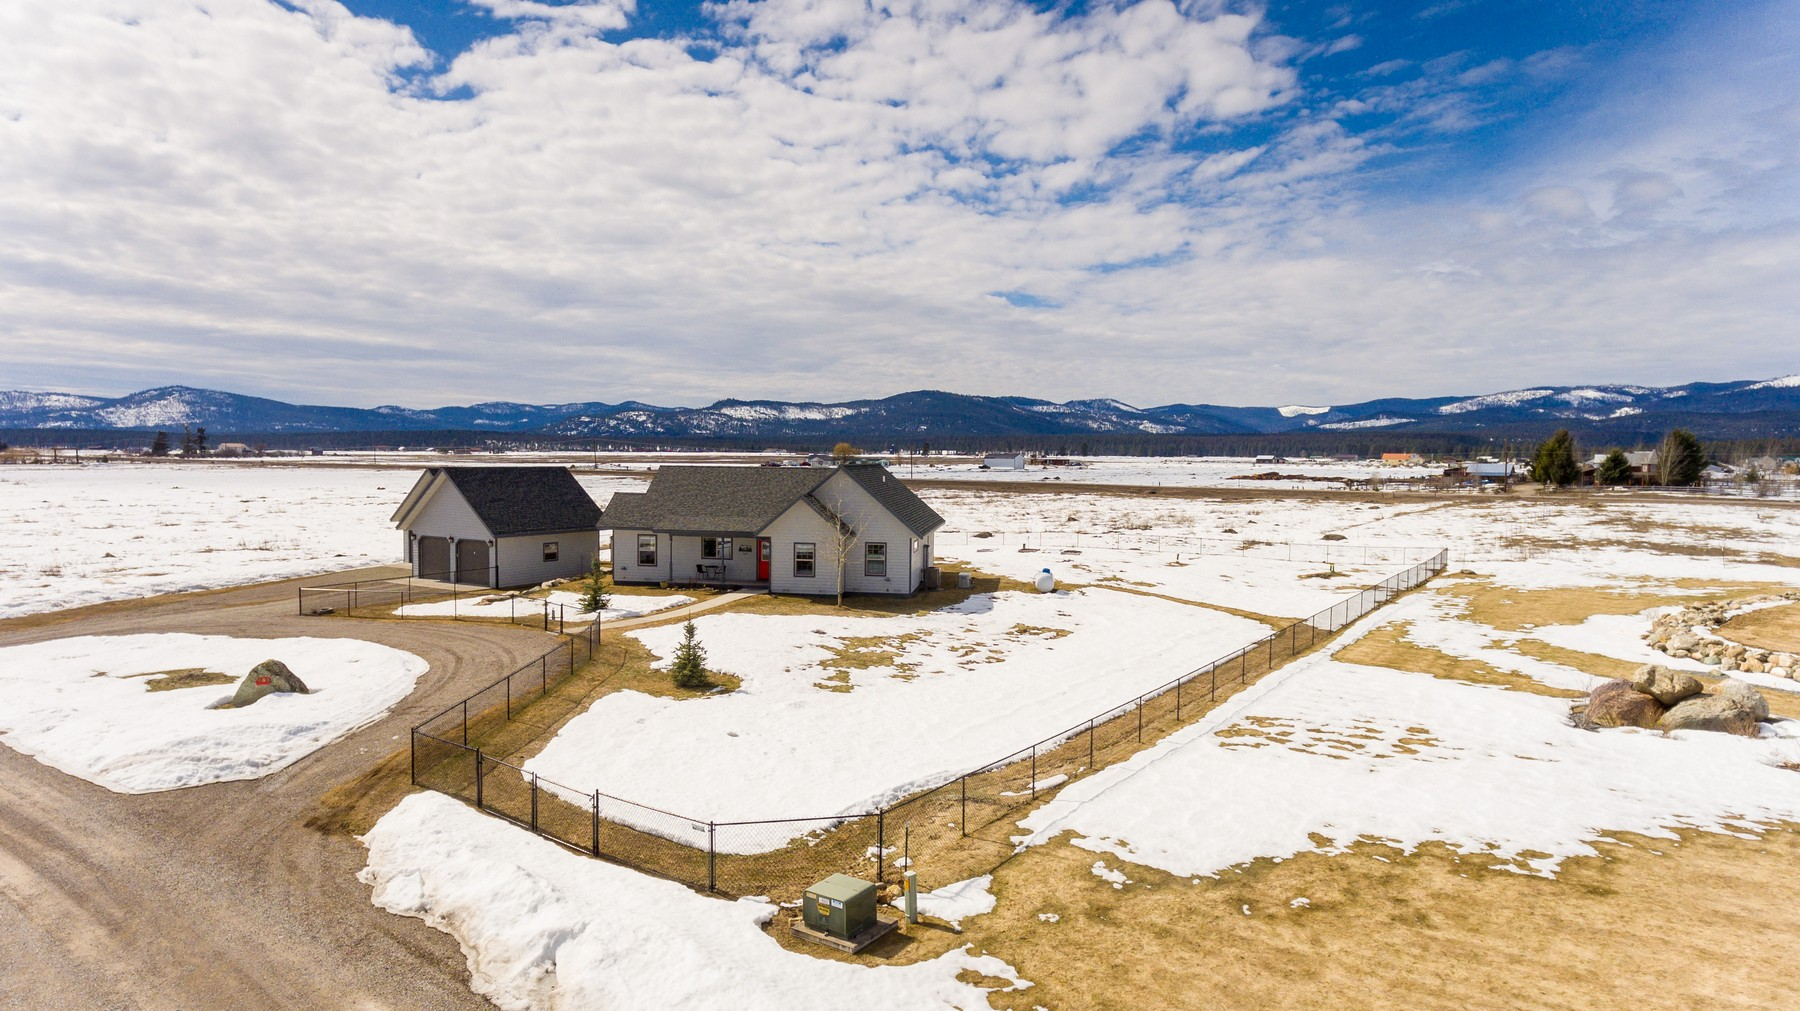 Single Family Home for Sale at 469 Lost Farm Ln , Kalispell, MT 59901 469 Lost Farm Ln Kalispell, Montana 59901 United States